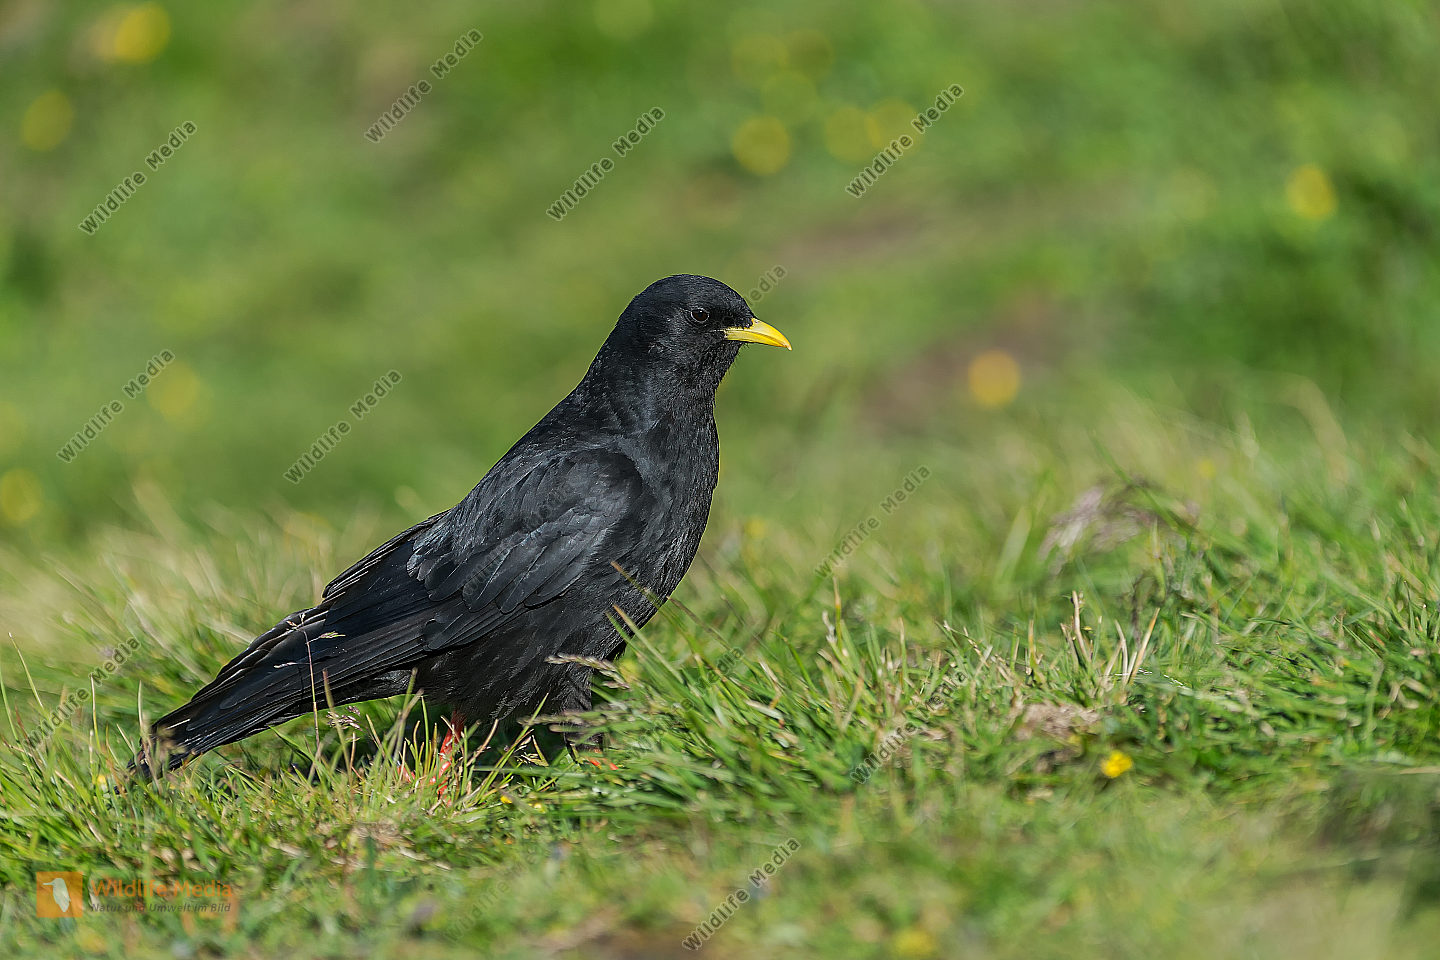 Alpendohle Pyrrhocorax graculus Alpine Chough